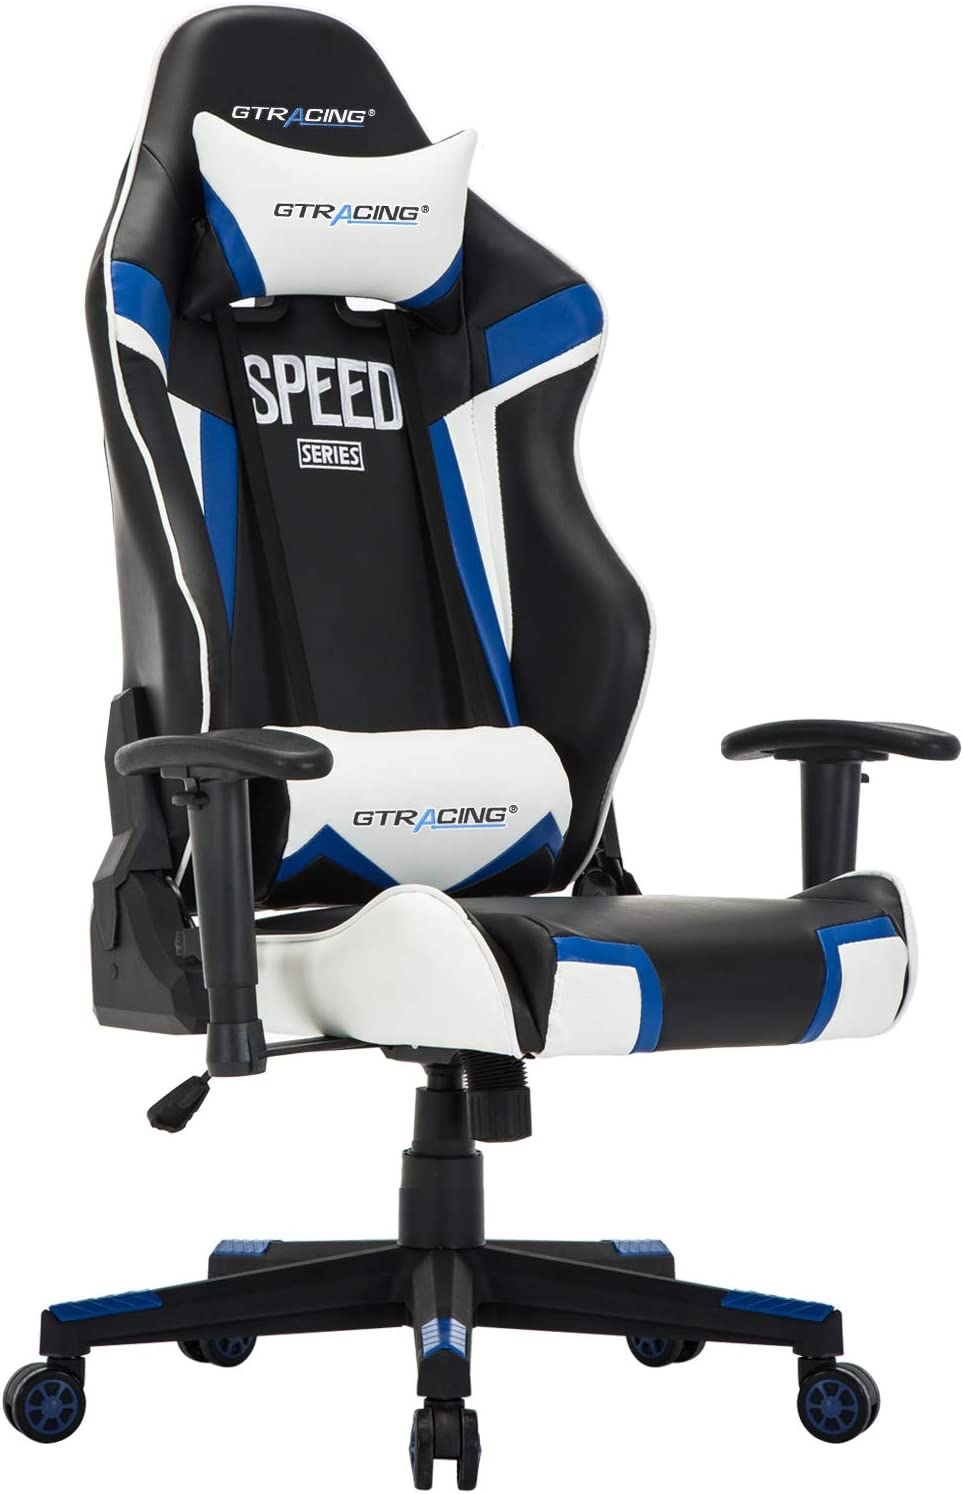 GTracing Gaming Chair Racing Office Chair High Back PU Leather Computer Desk Chair Executive and Ergonomic Swivel Chair with Headrest and Lumbar Support Blue